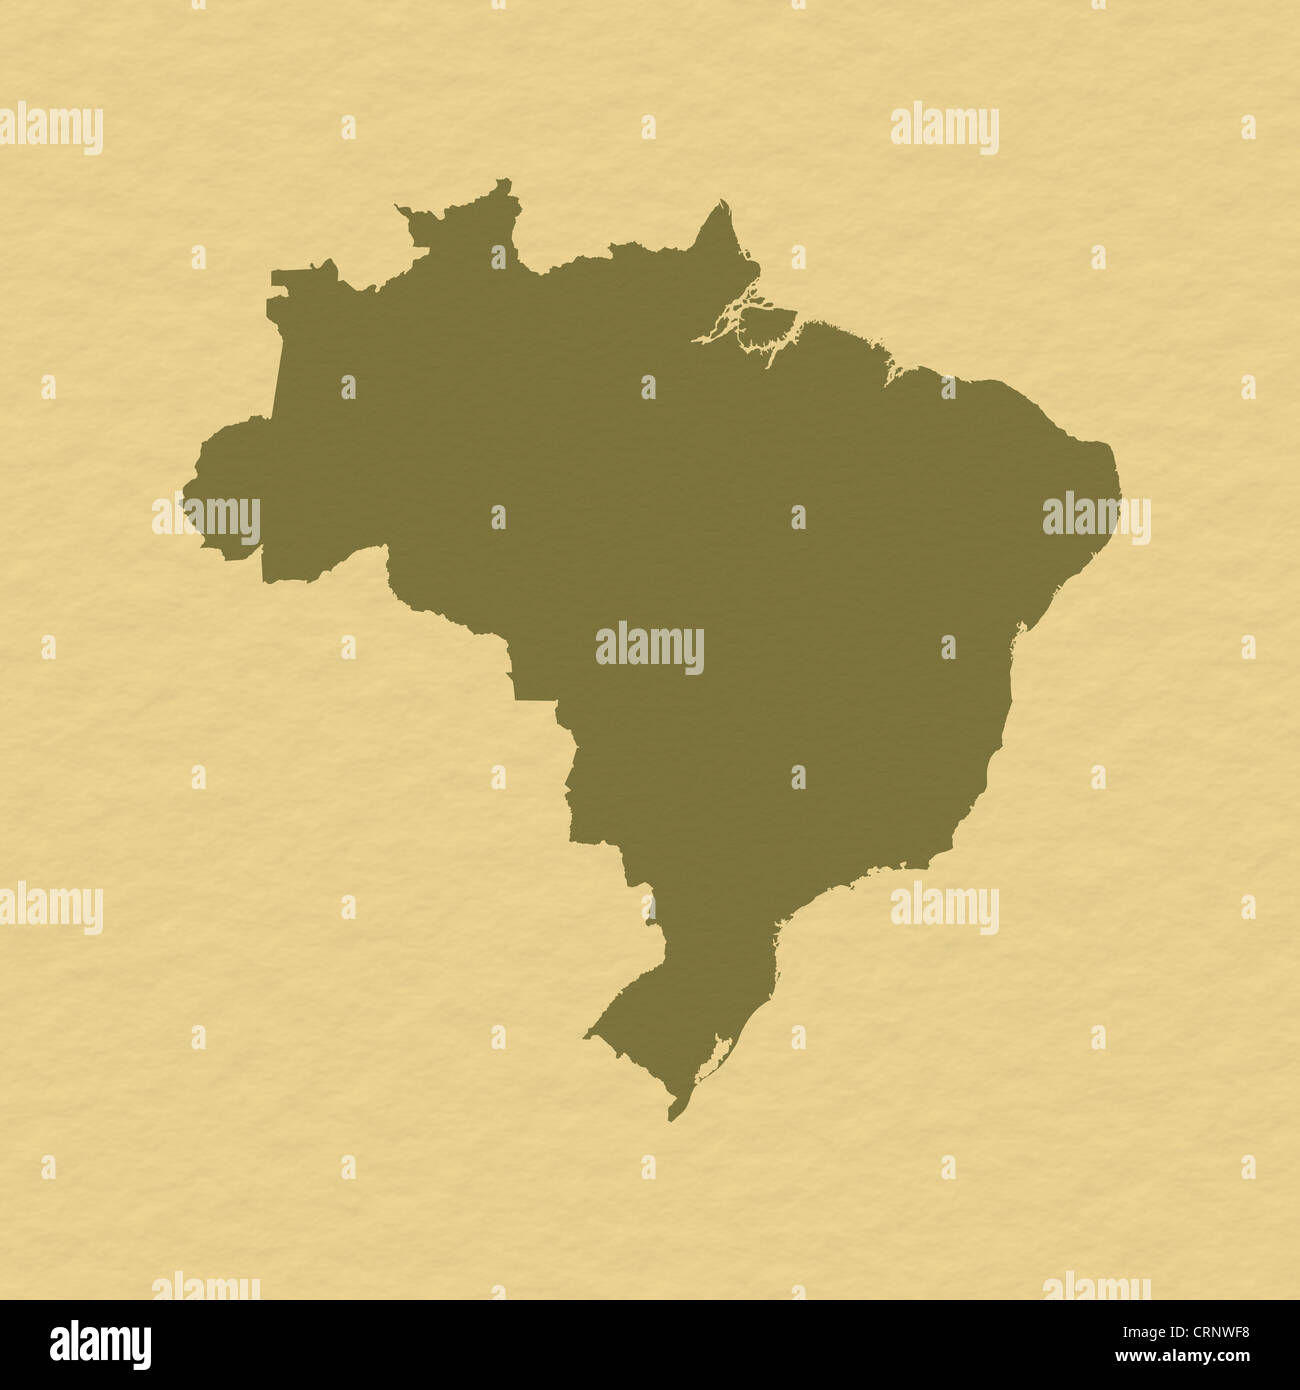 Political Map Of Brazil With The Several States Stock Photo - Political map of brazil